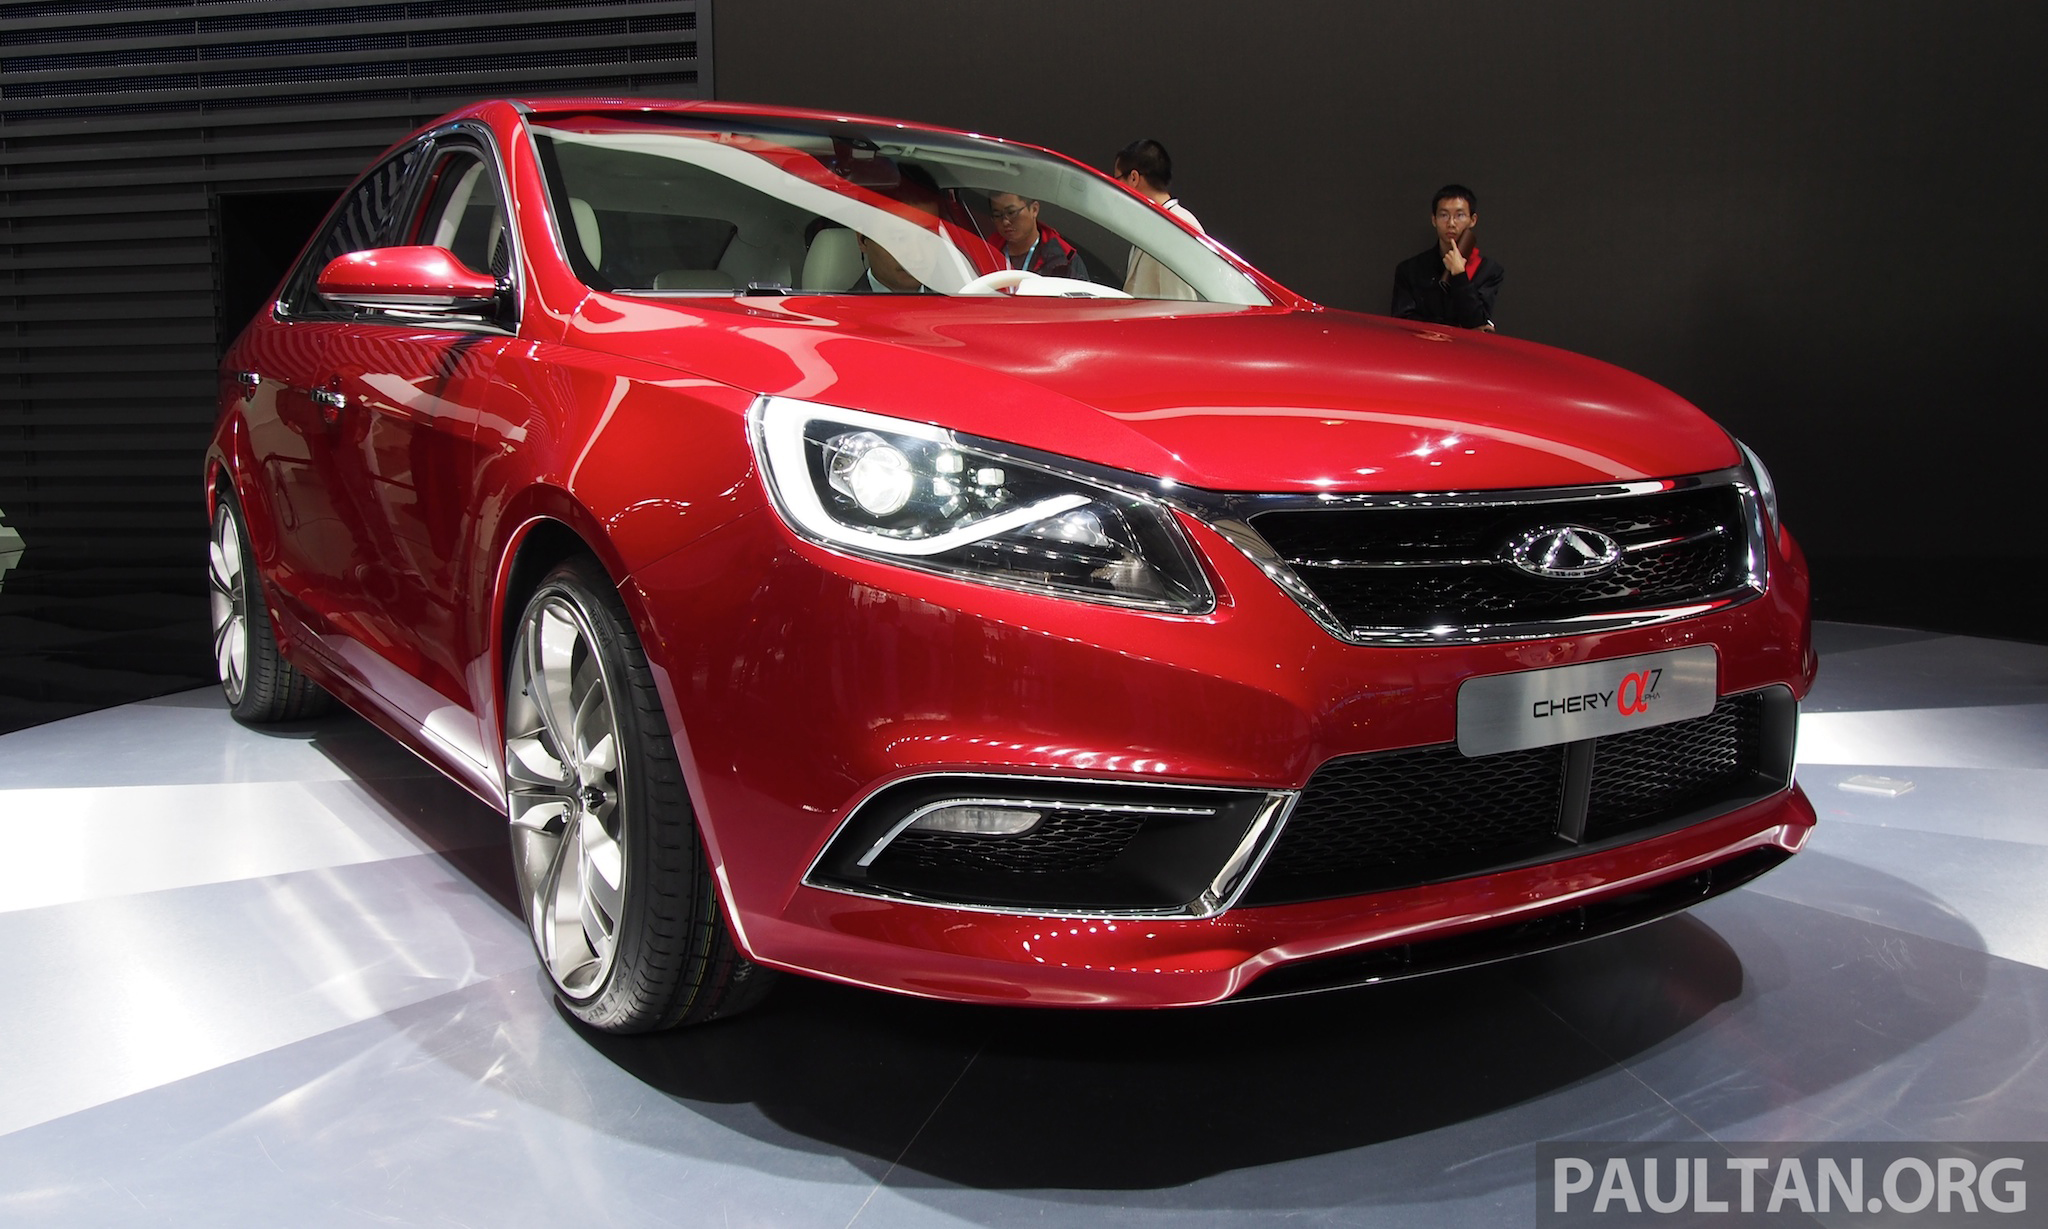 Car Image S >> Chery Alpha 7 shows Chery is still learning fast! Paul Tan - Image 170298